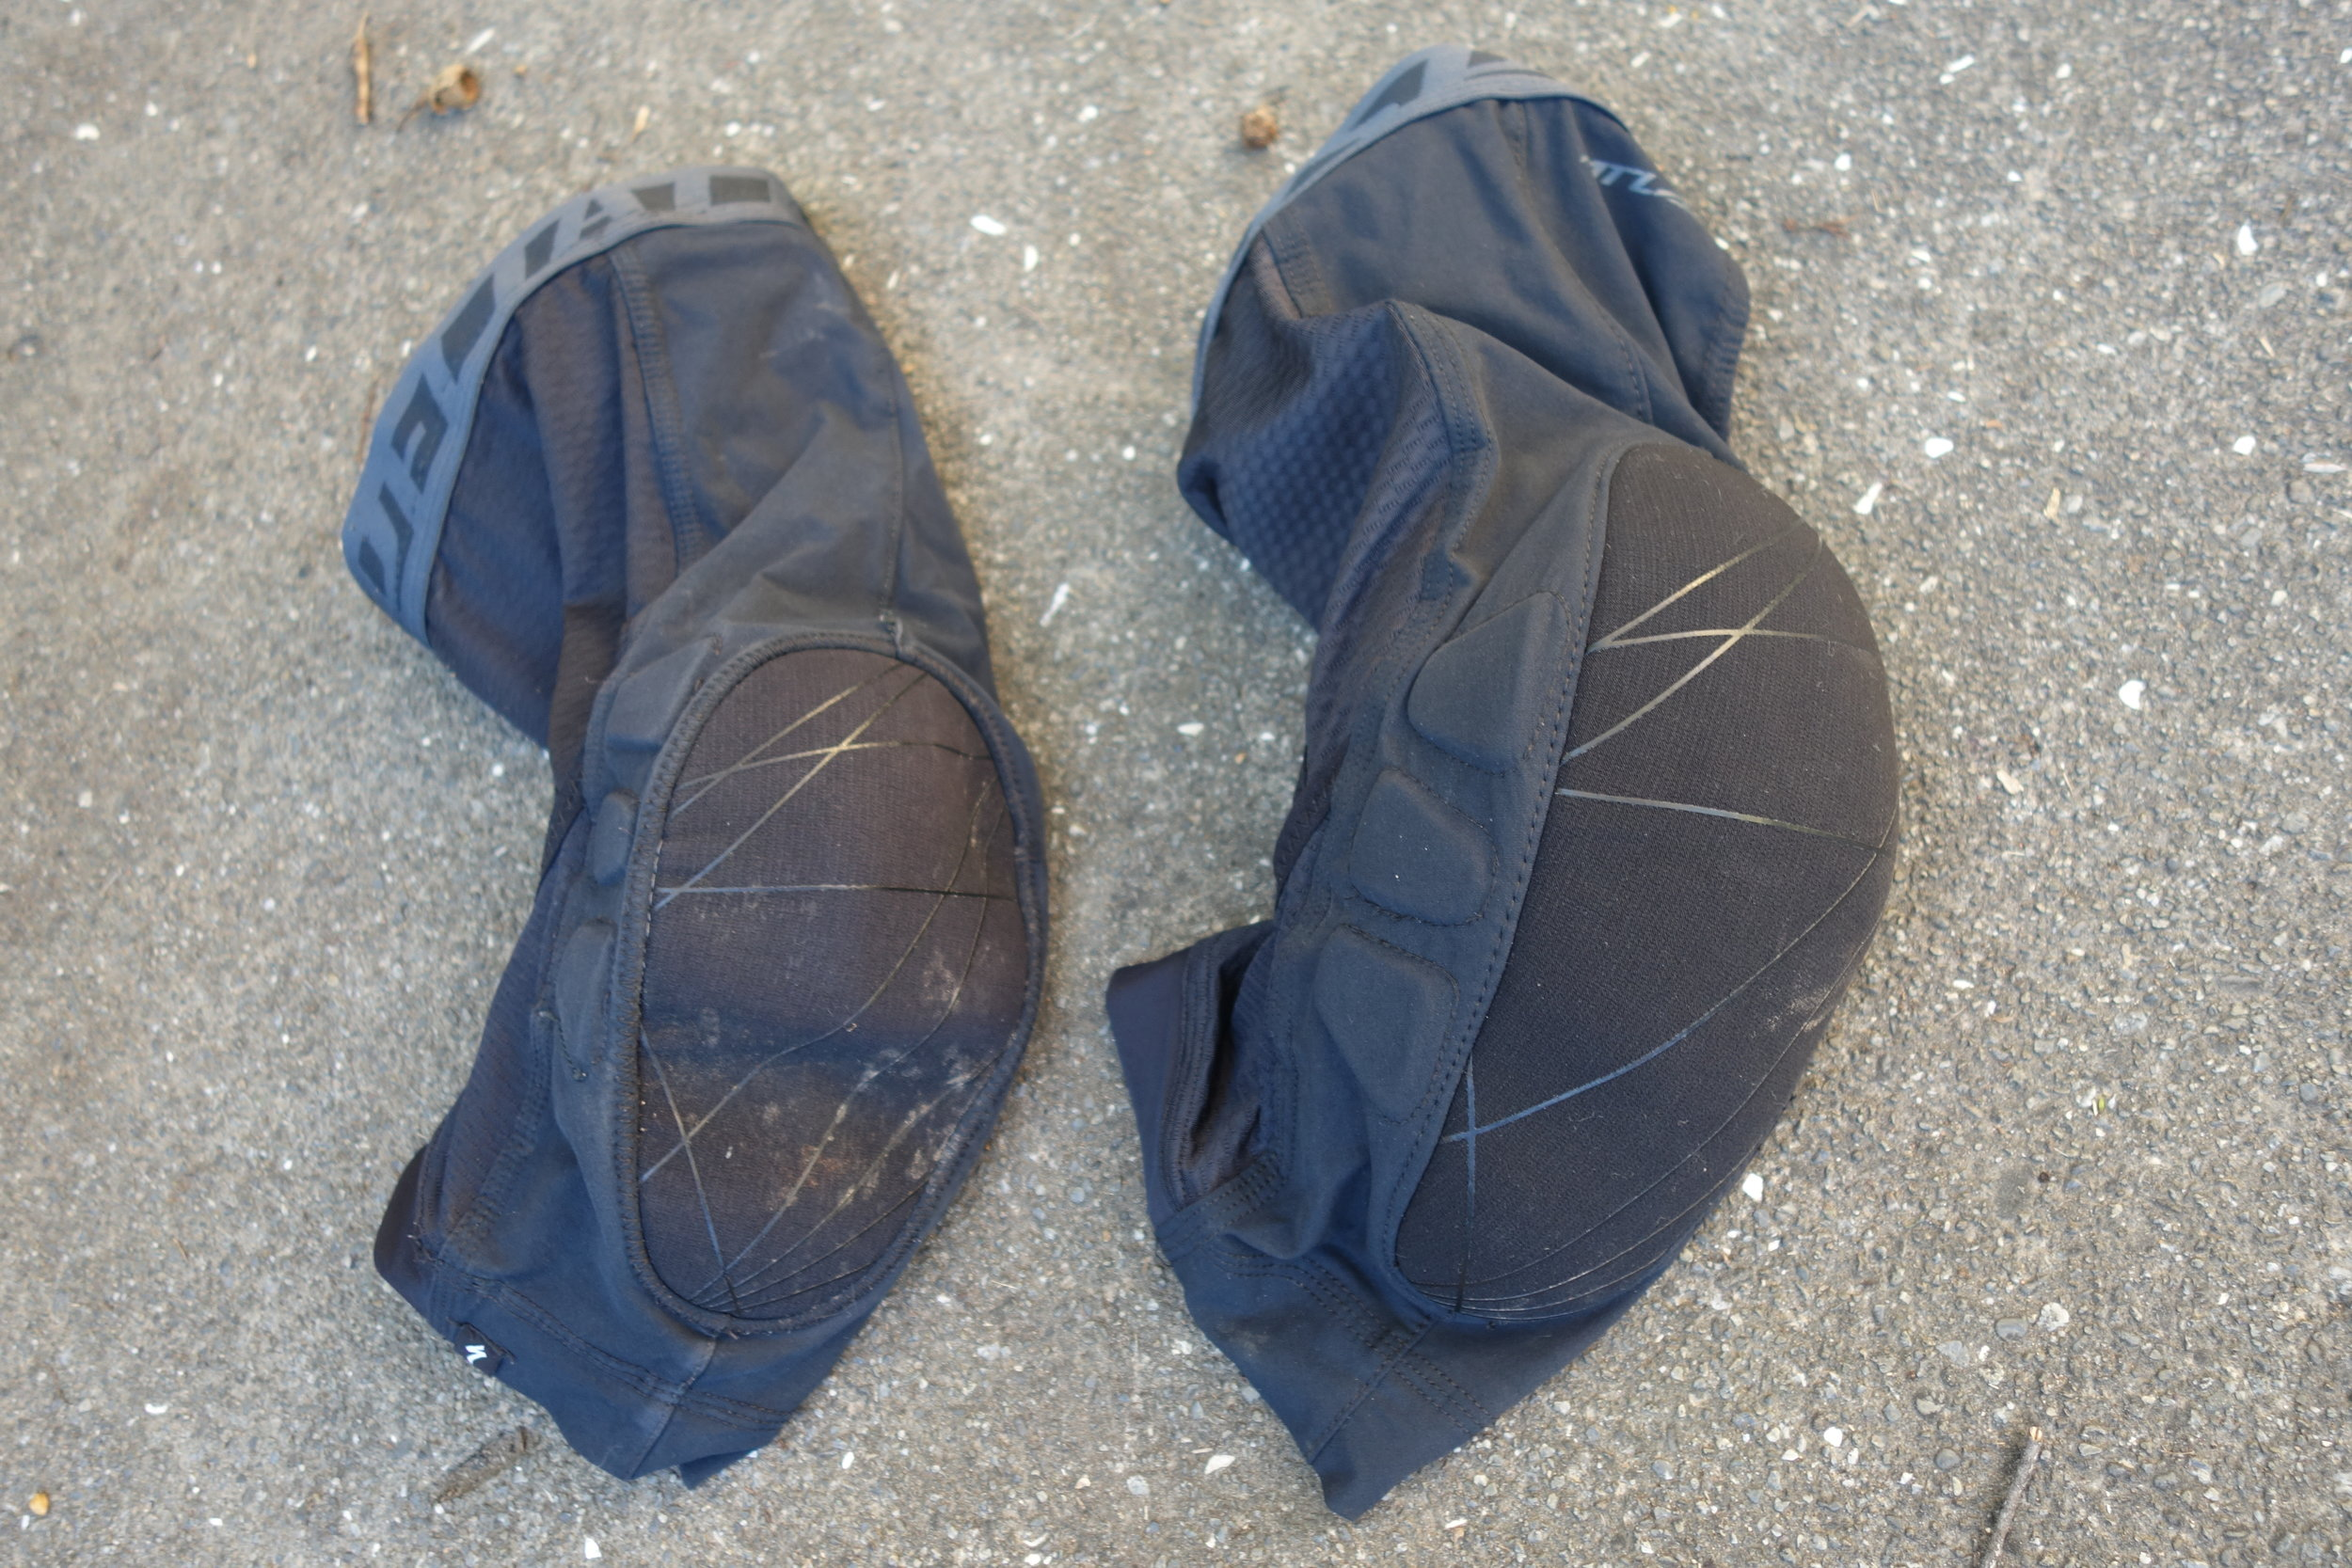 The new version on the right, versus the previous shitty one at left. Larger more shaped knee cup.